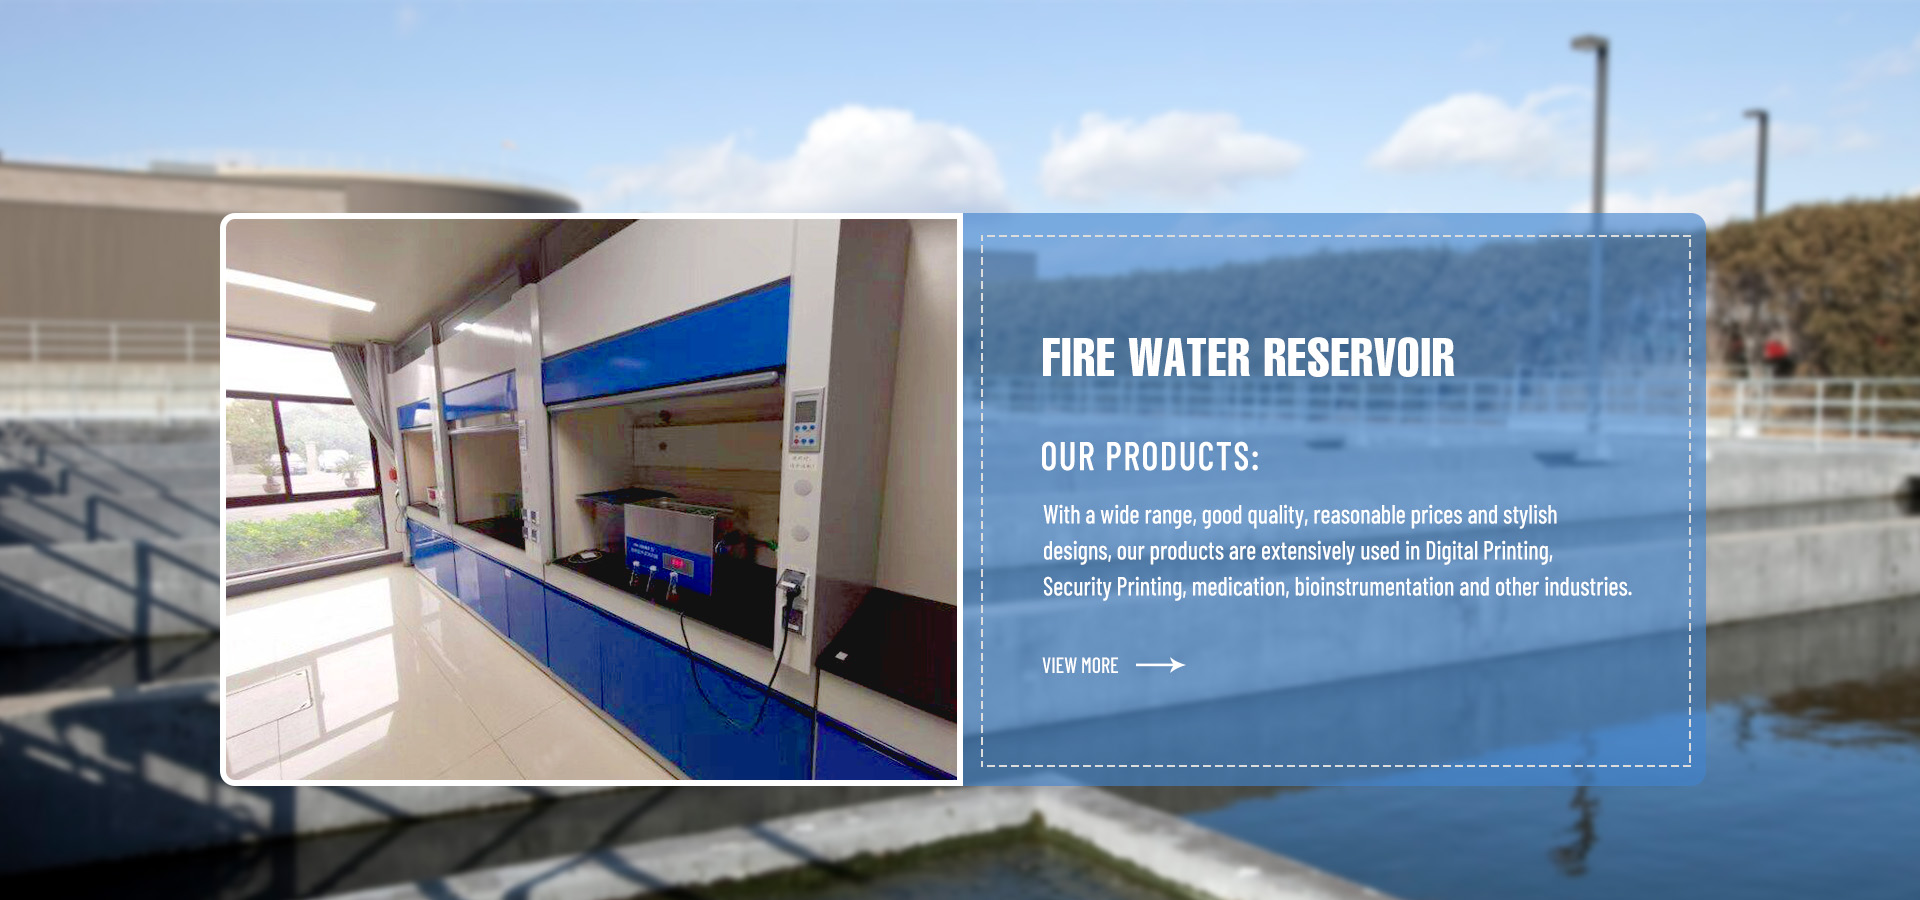 Fire water reservoir